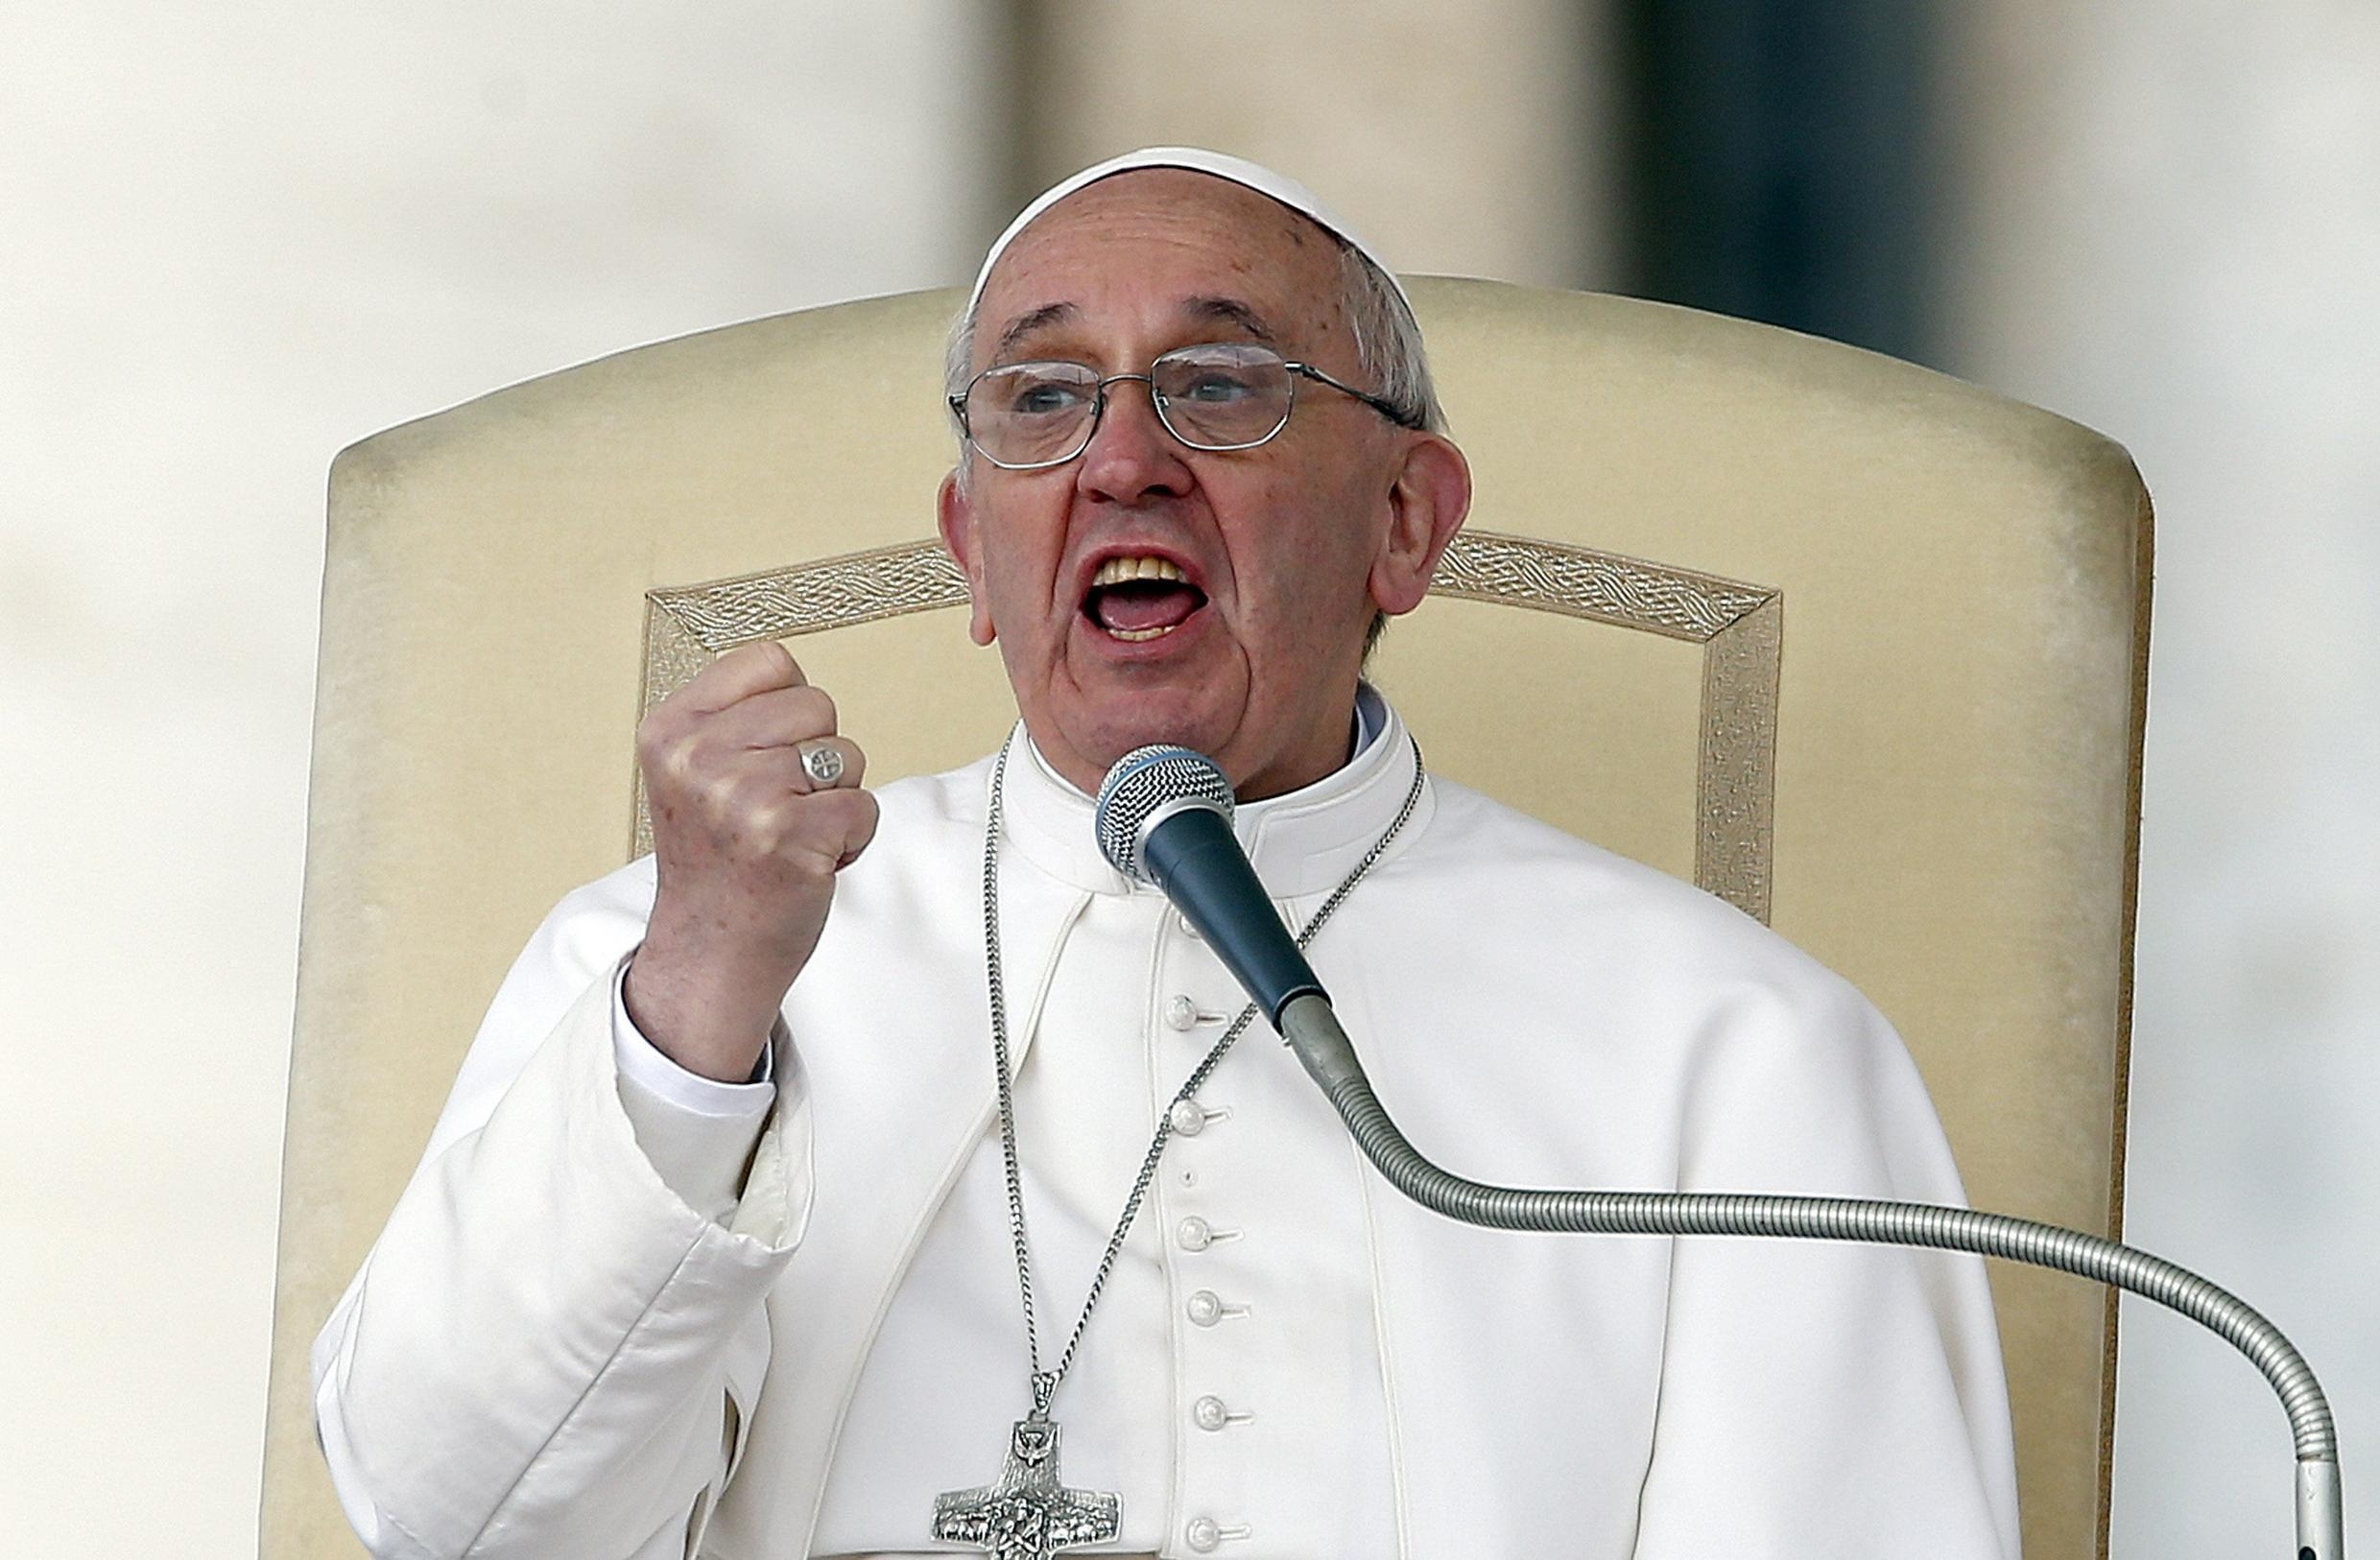 Pope Francis gestures as he speaks during a weekly general audience in Saint Peter's Basilica, at the Vatican April 3, 2013.